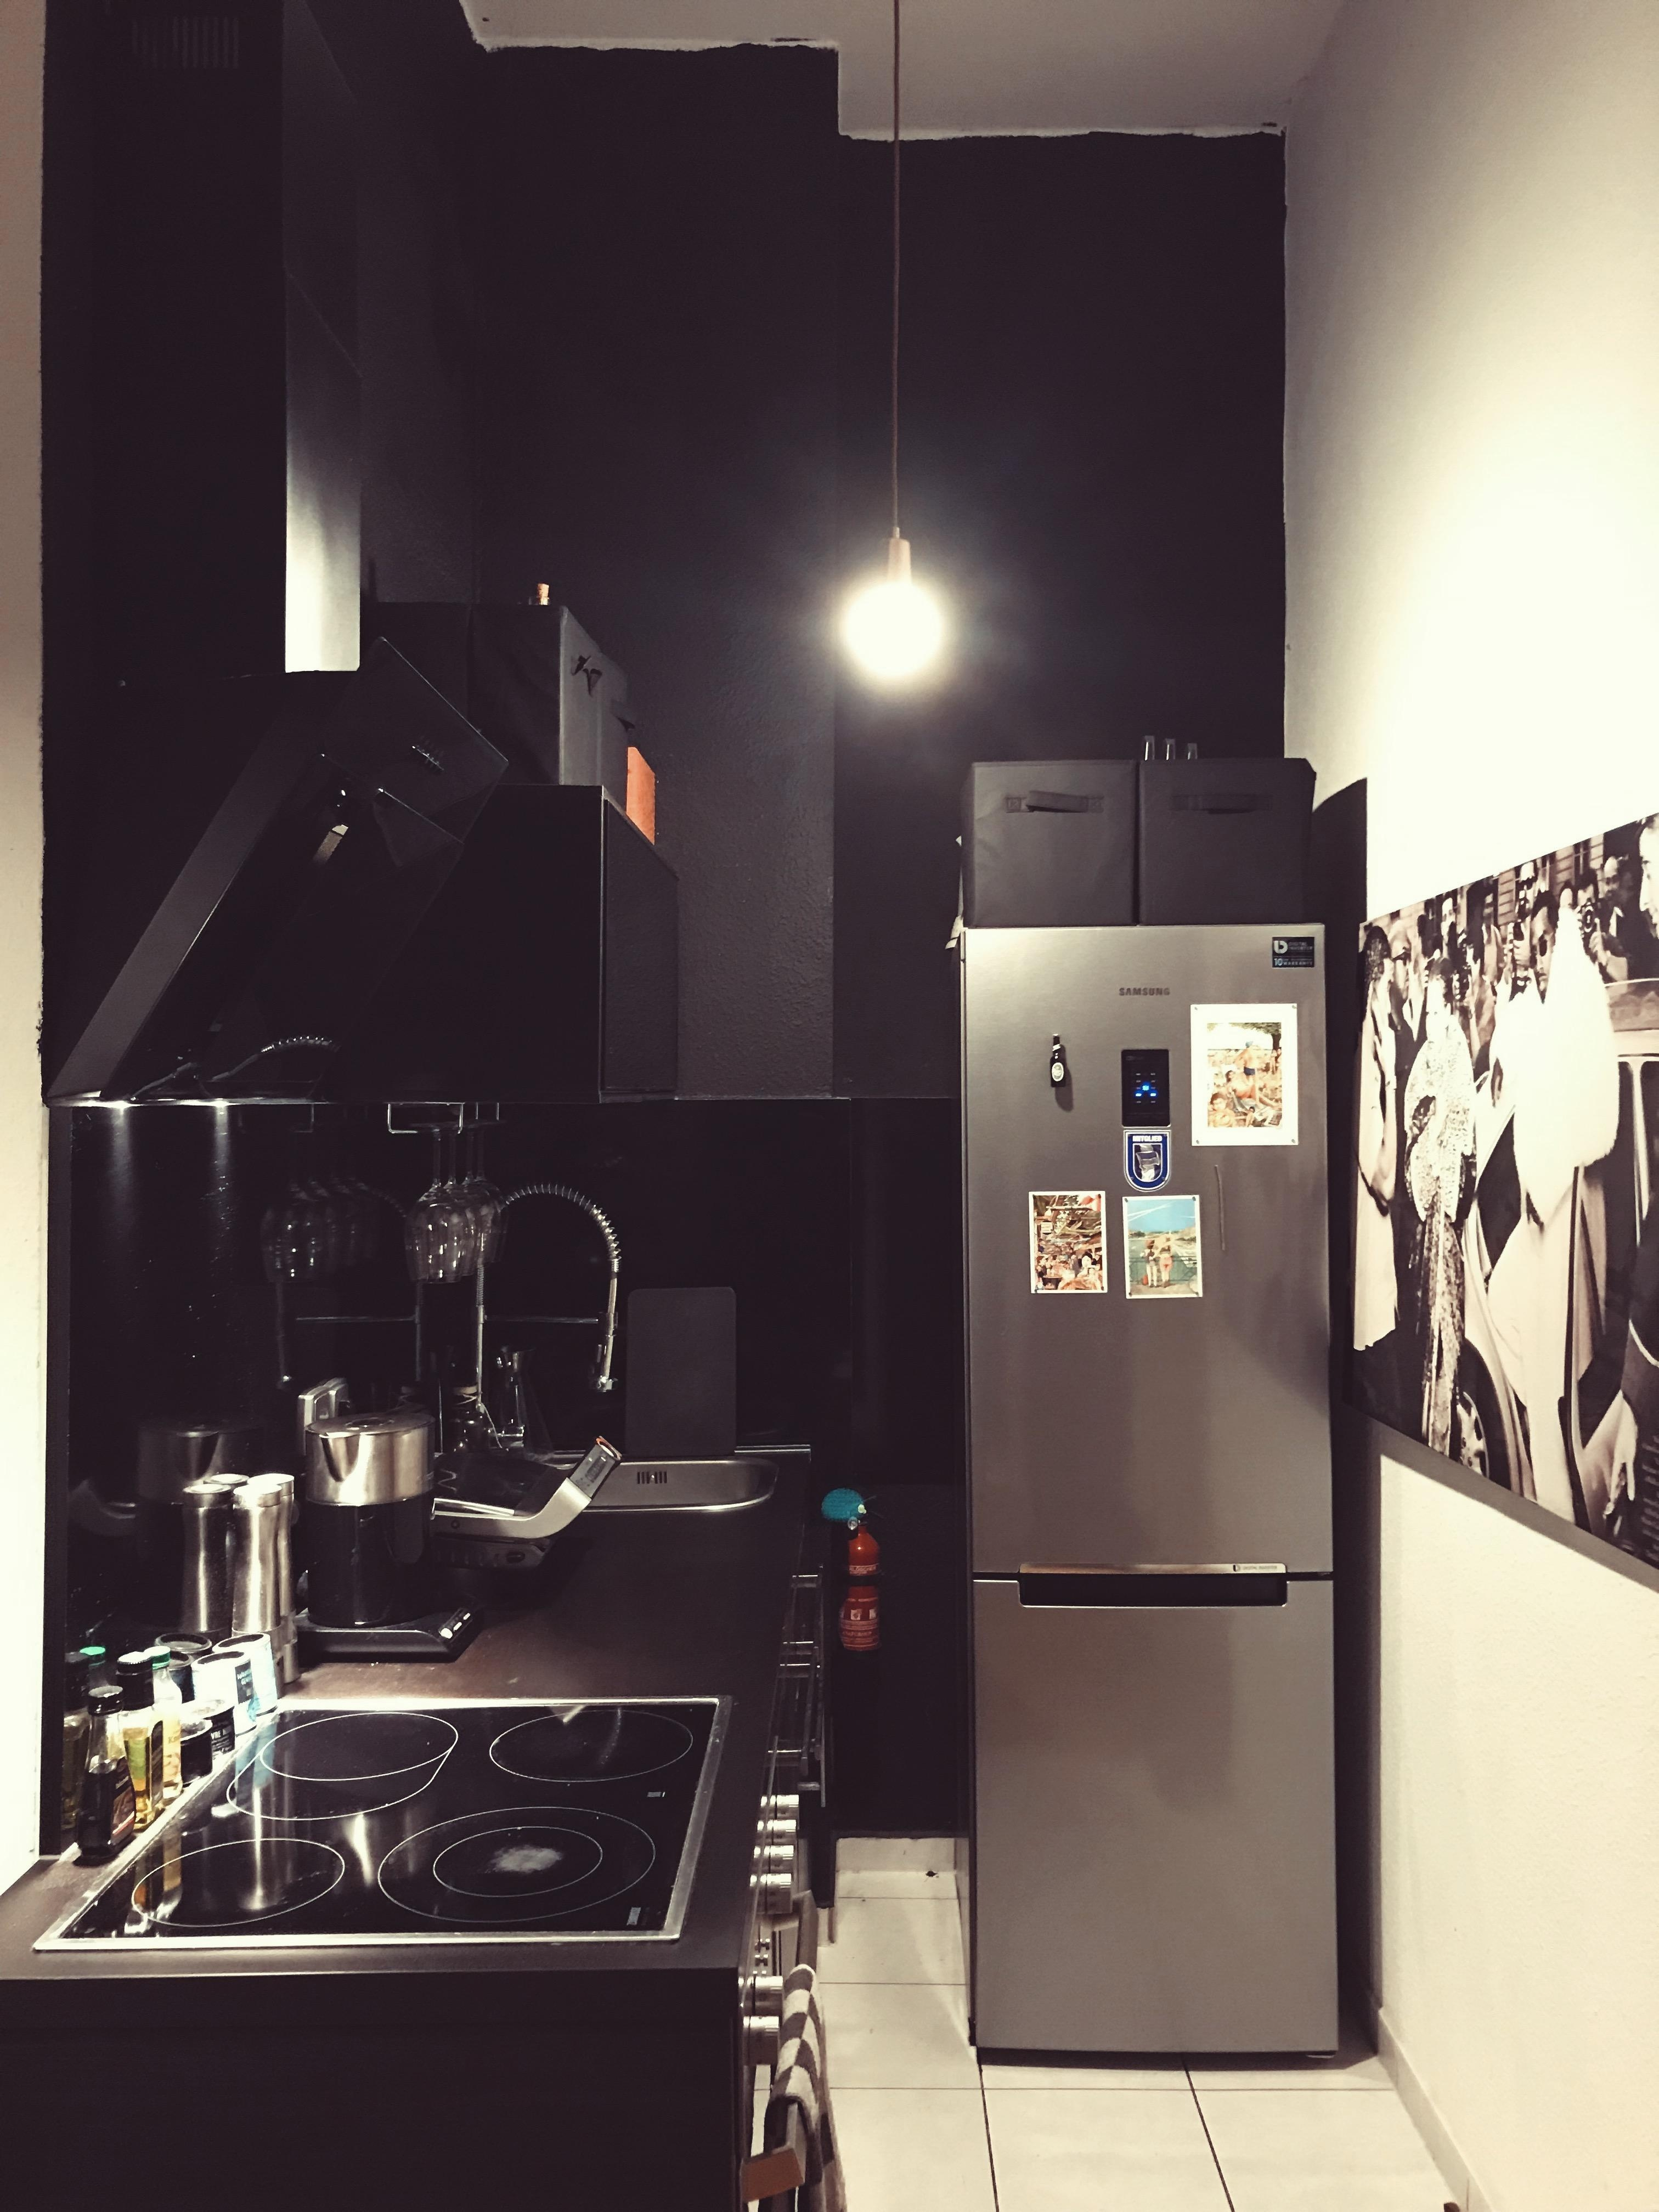 #allblack #kitchen #selfmade